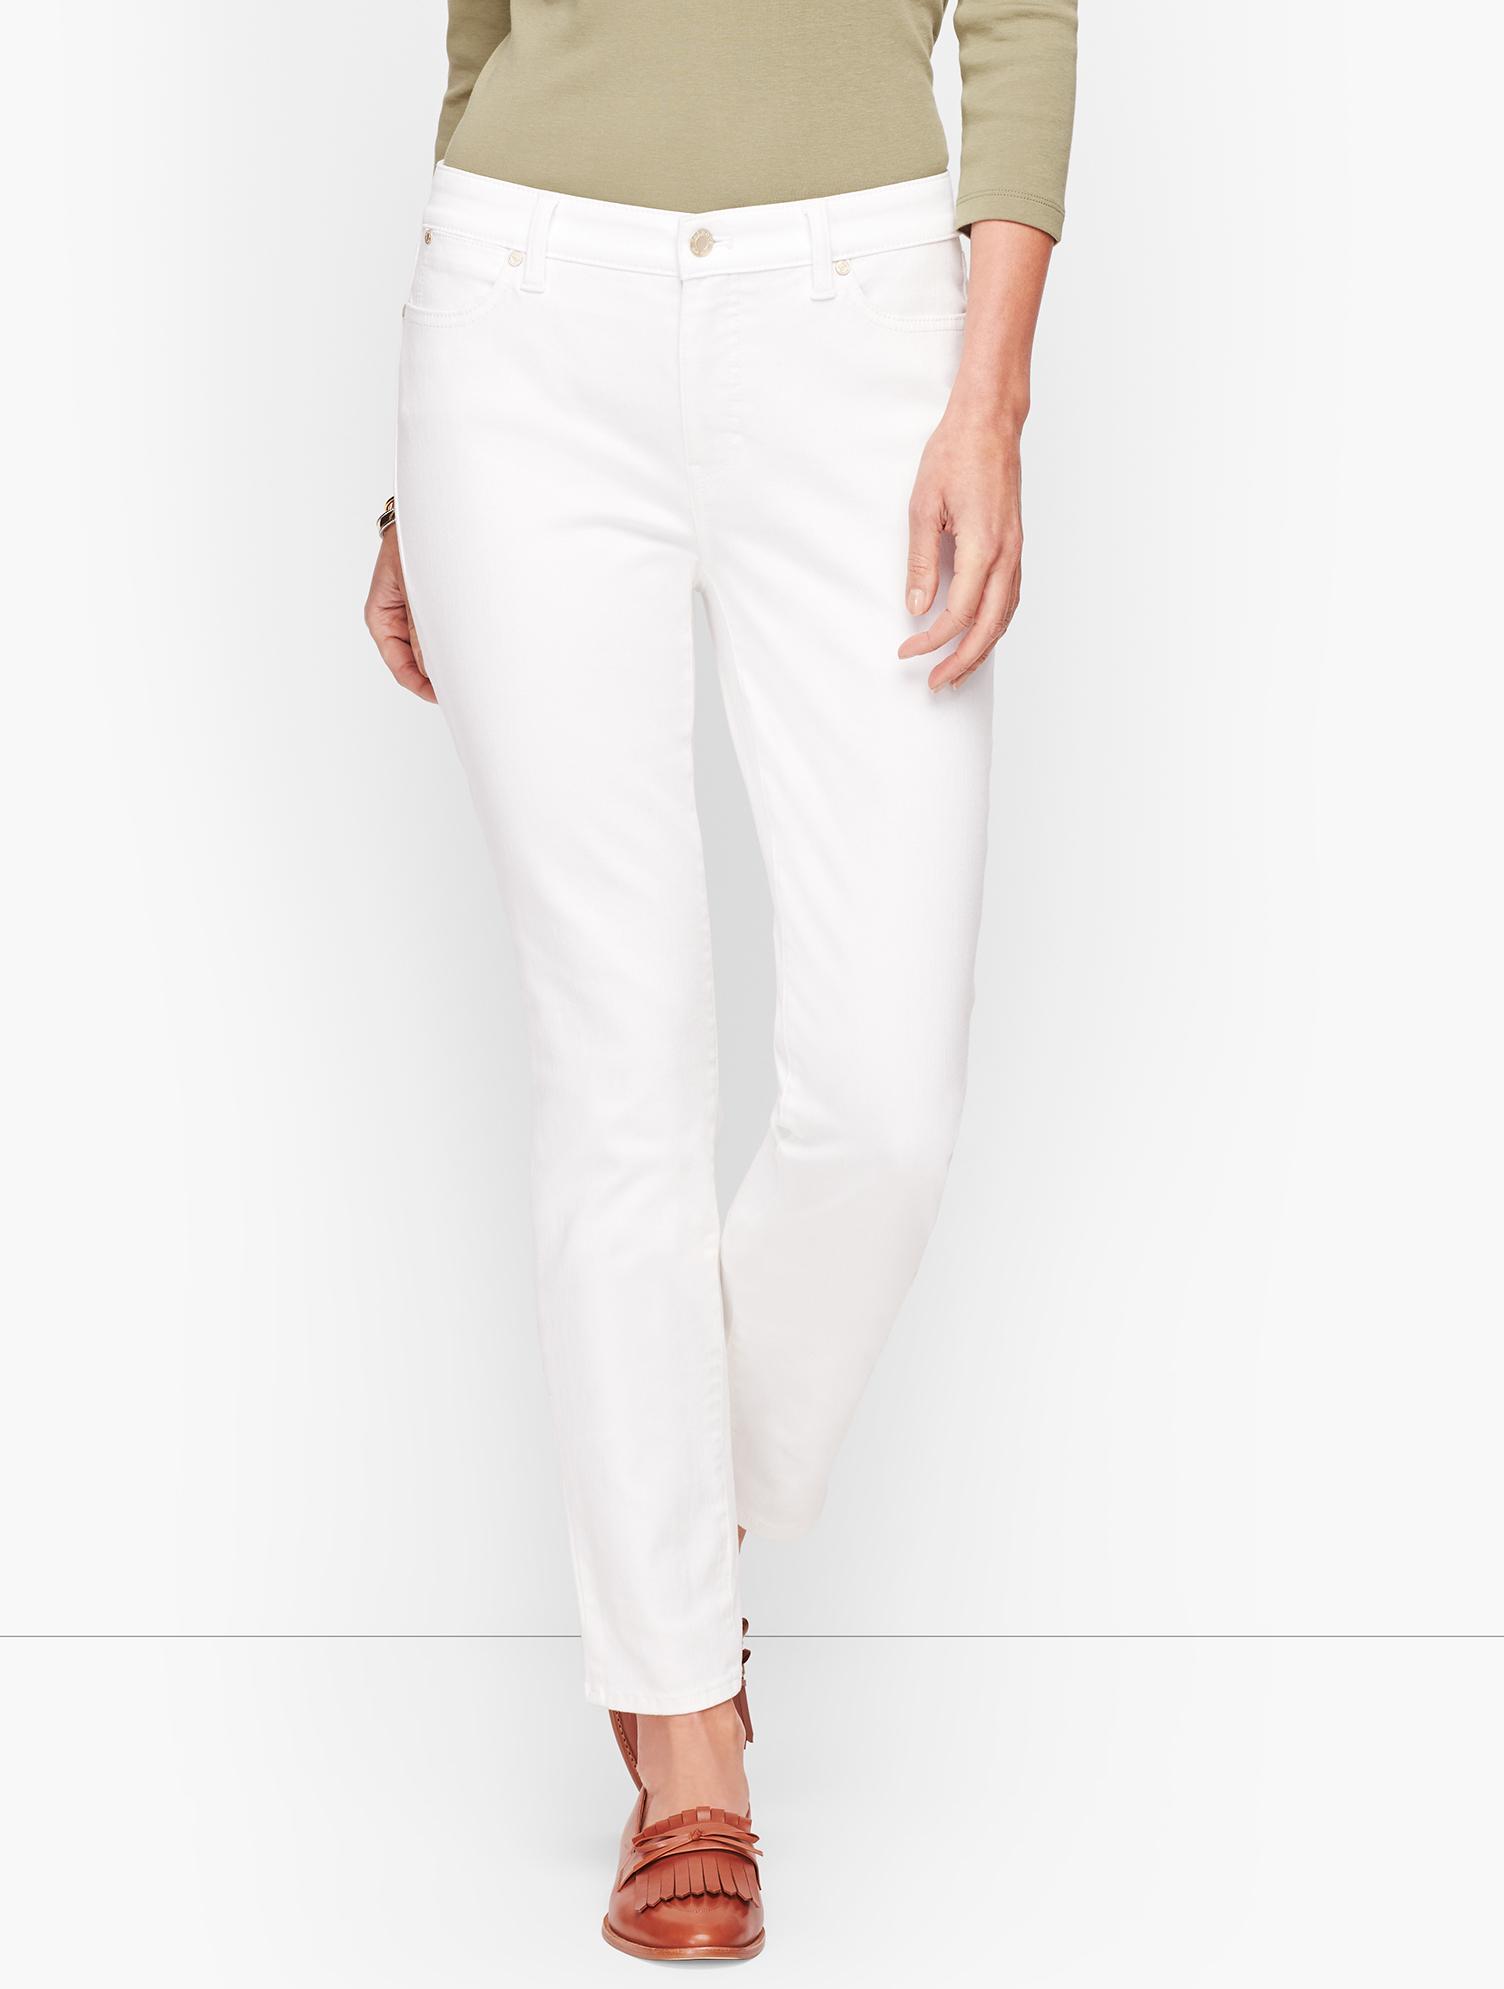 Our Flawless Five-Pocket Slim Ankle Jeans are artfully designed for maximum style. The charming ankle length and tapered silouette are flattering all around. So easy to pair with our tunics and ballet flats. If you have an hourglass figure, check out our Slim Ankle Jeans - Curvy Fit. features Slim Fit Hits: At Waist Ankle Length Closure: Front Button Pockets: Five-Pocket Invisible Slimming Panel Imported Fit: Inseam: Misses 29 inches; Misses Long: 31 inches; Petite 26 1/2; Plus Size 29 inches; P